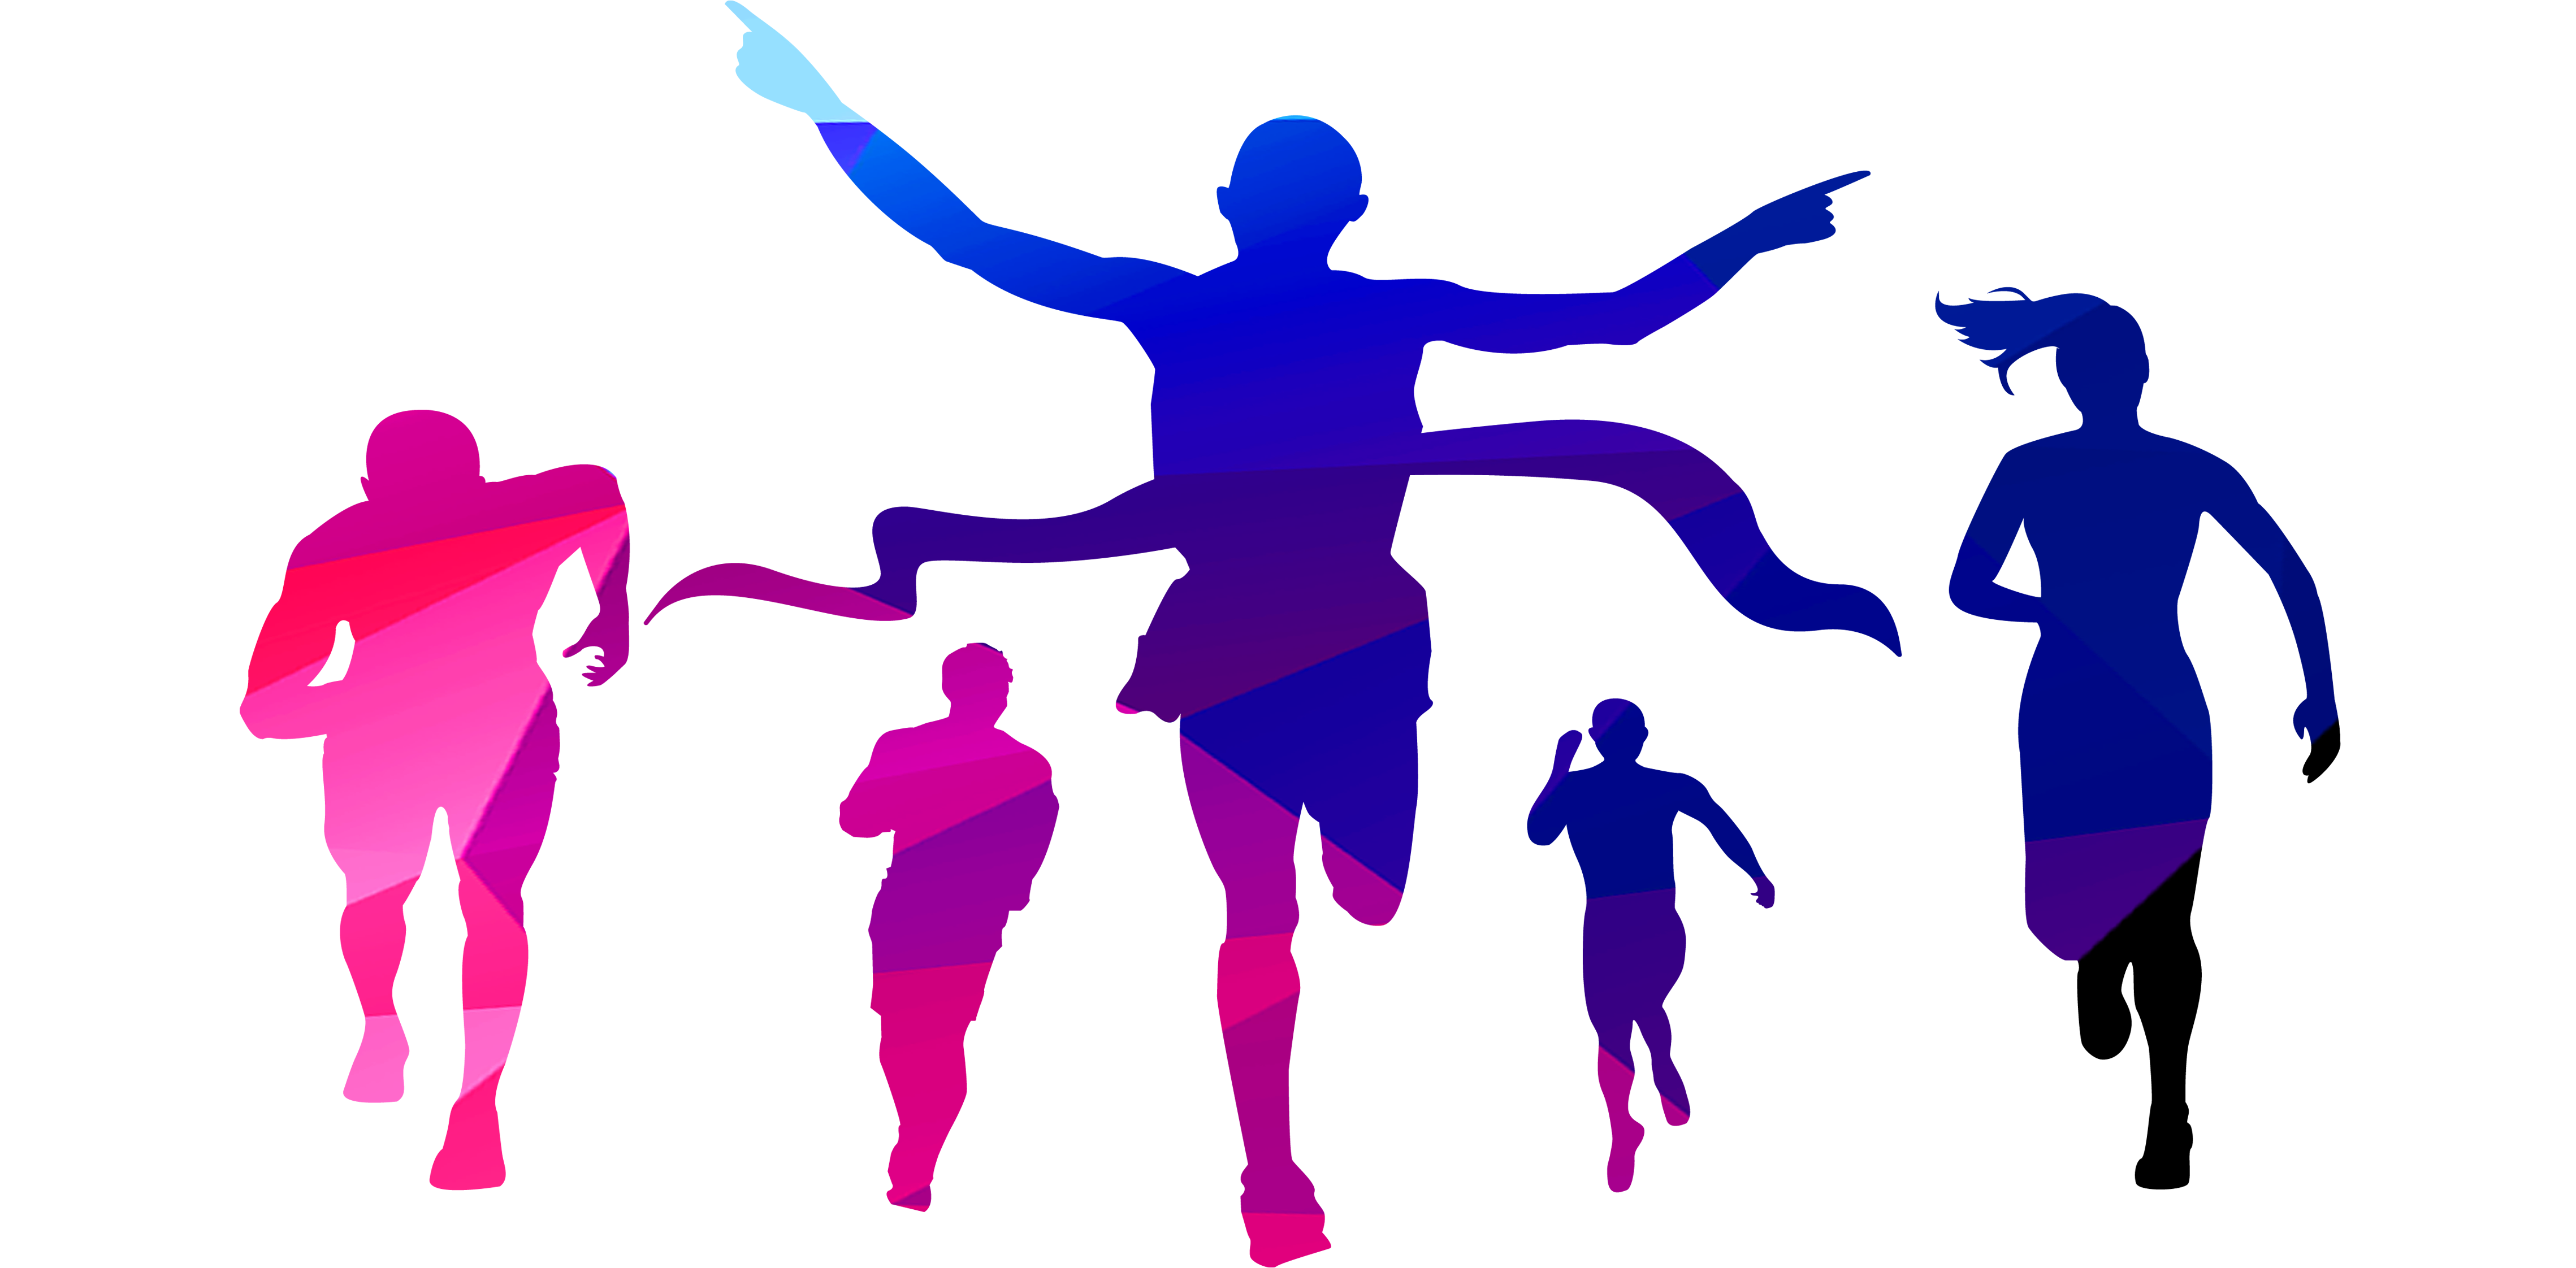 Cross the finish line clipart clip freeuse library Indira Marathon - People crossing the finish line 4557*2244 ... clip freeuse library